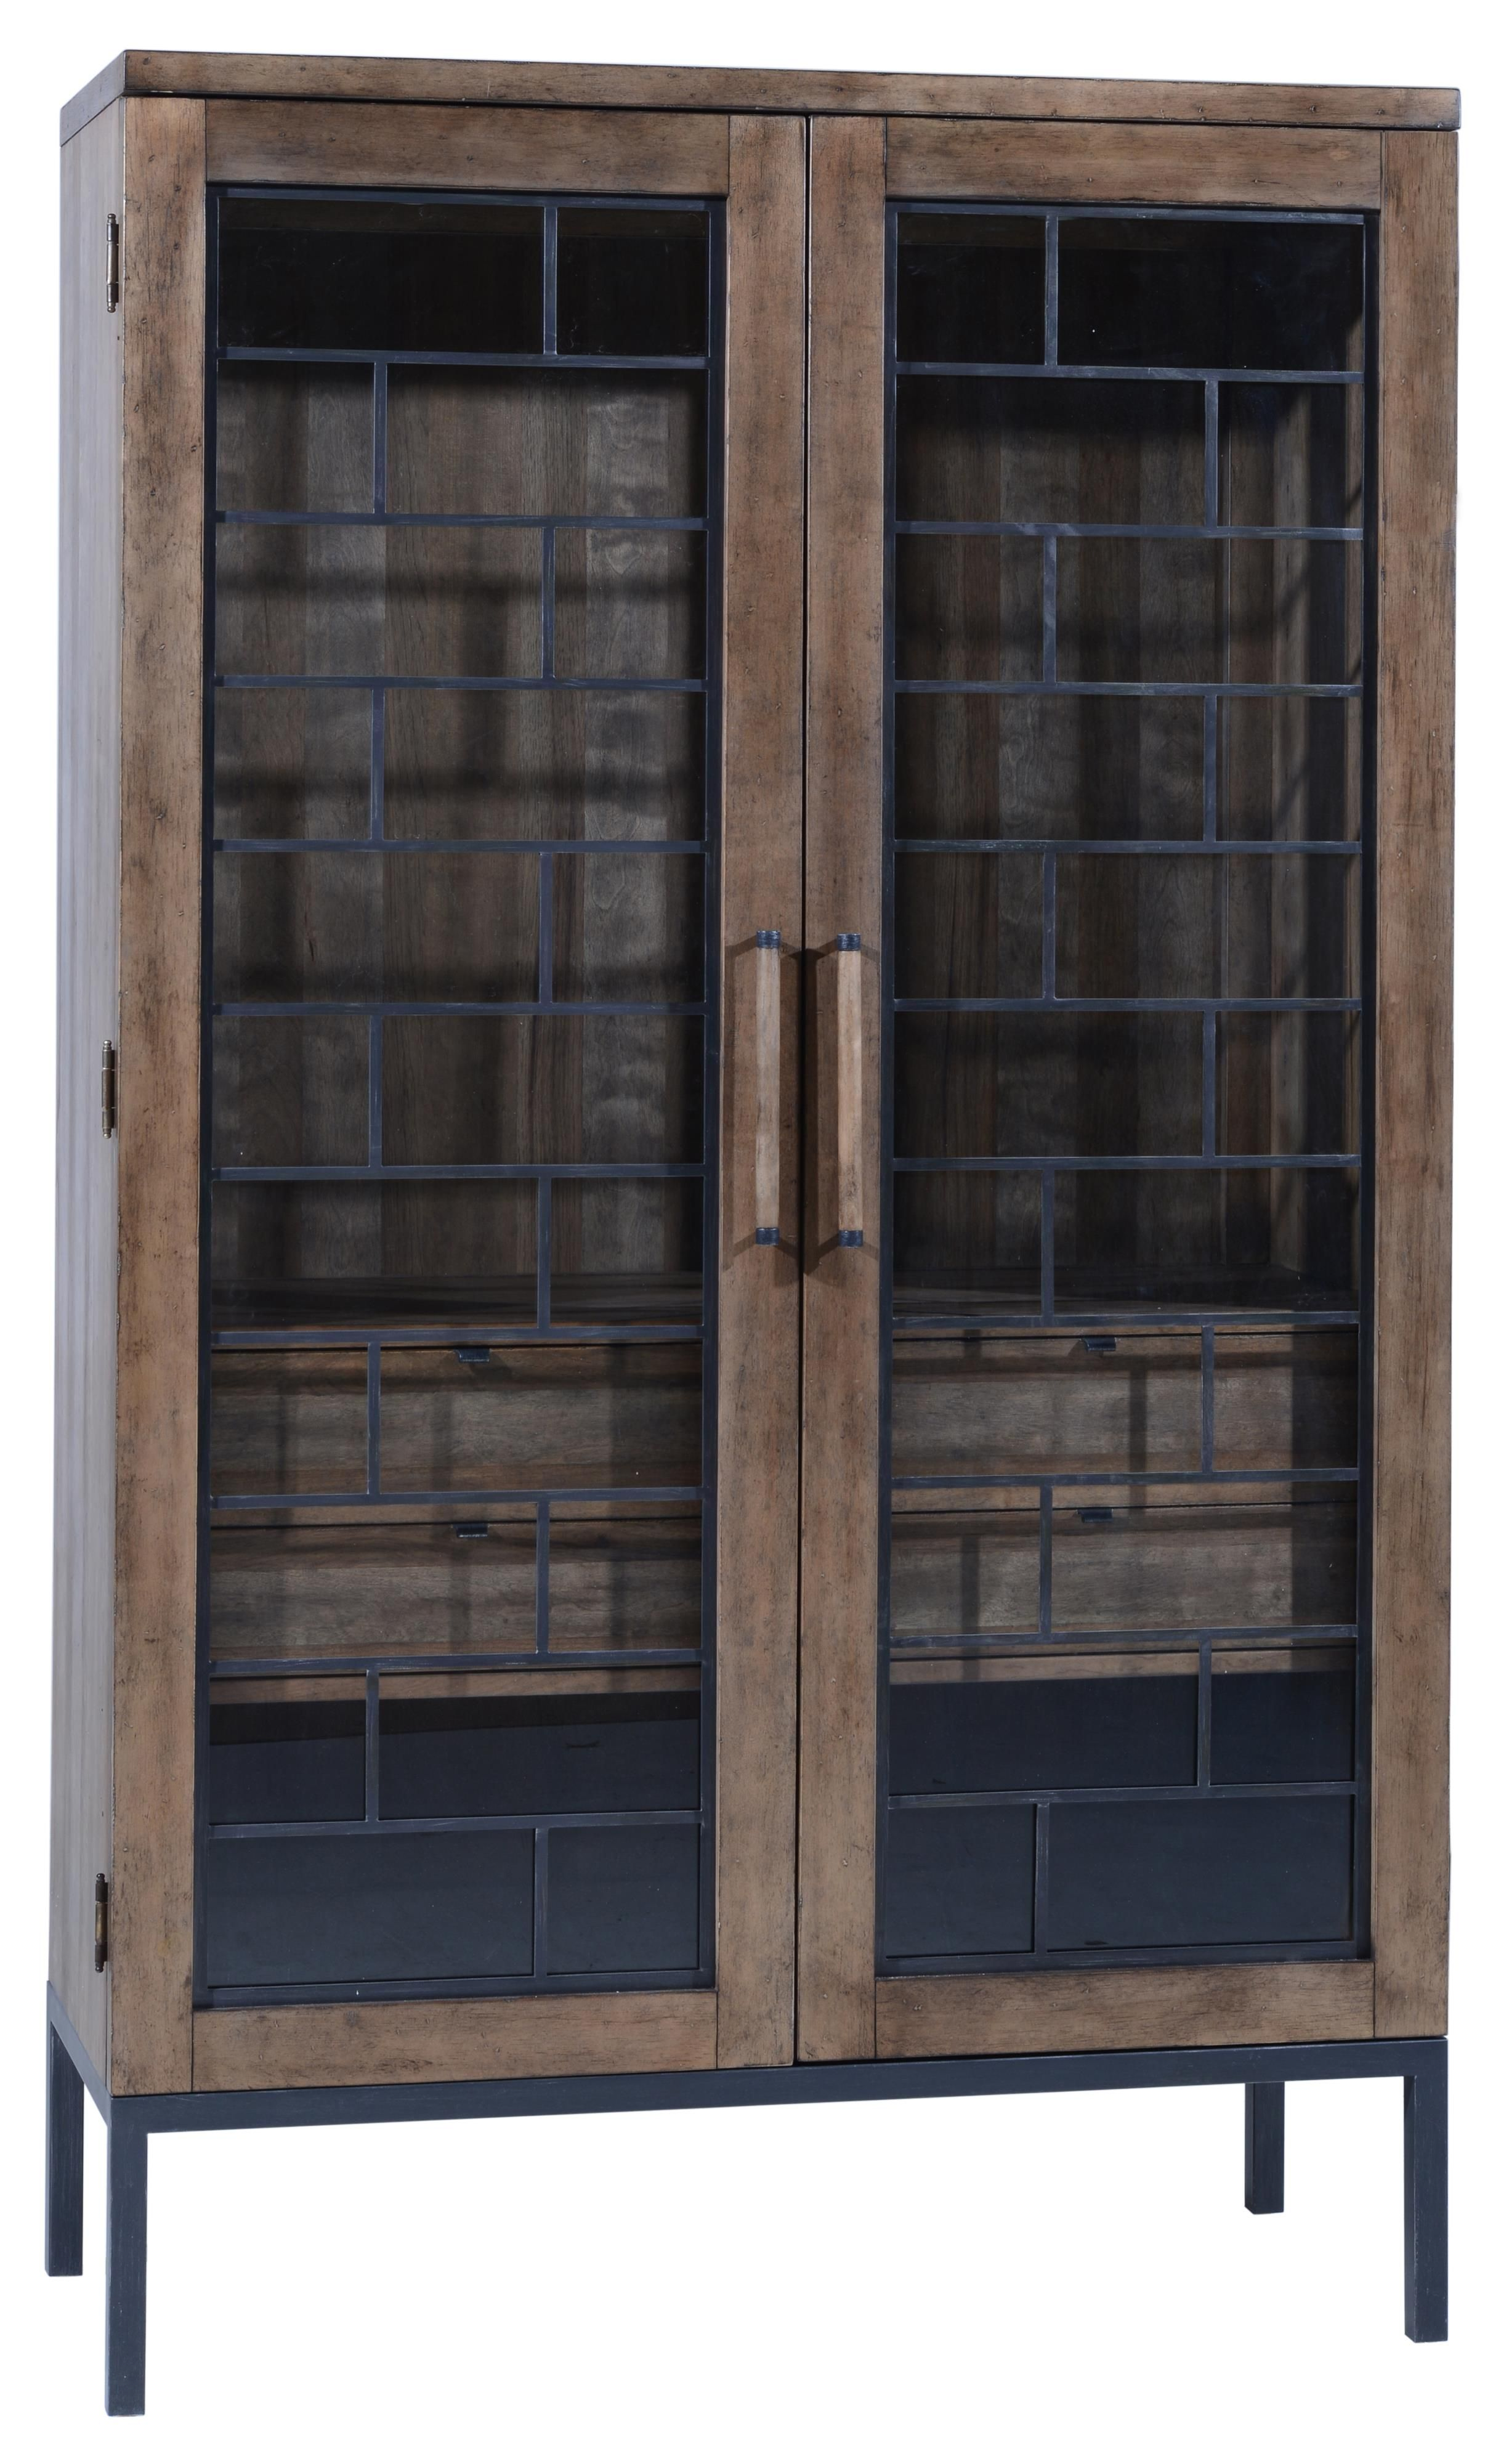 Epicenters Wood And Metal Williamsburg Display Cabinet By A R T Furniture Inc Part Of The Epicenters Display Cabinet Vintage Industrial Furniture Furniture